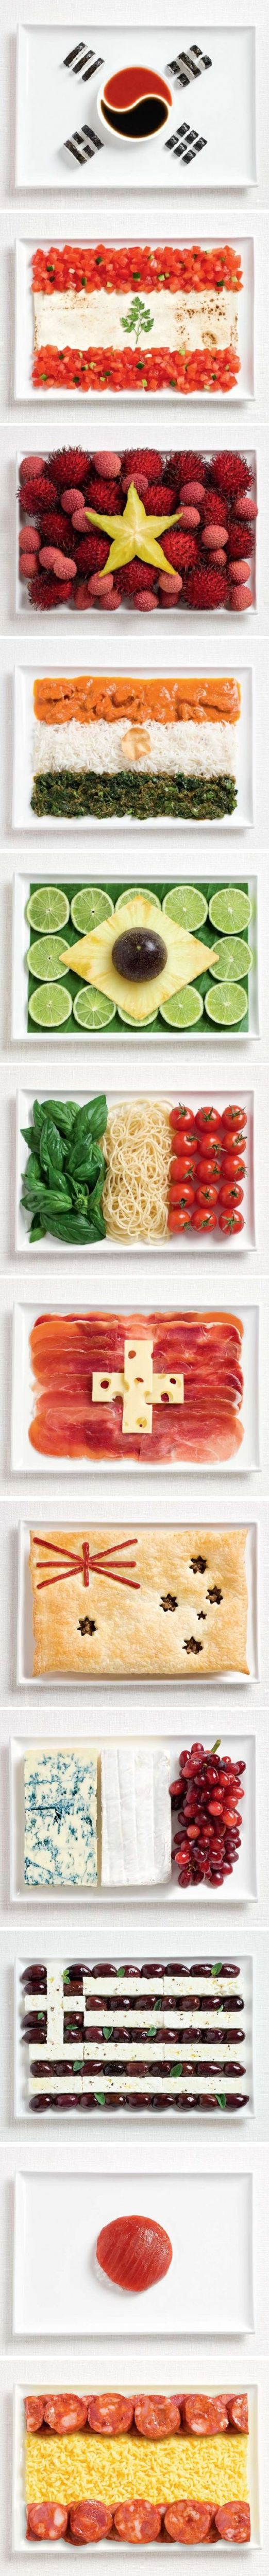 flag food ad